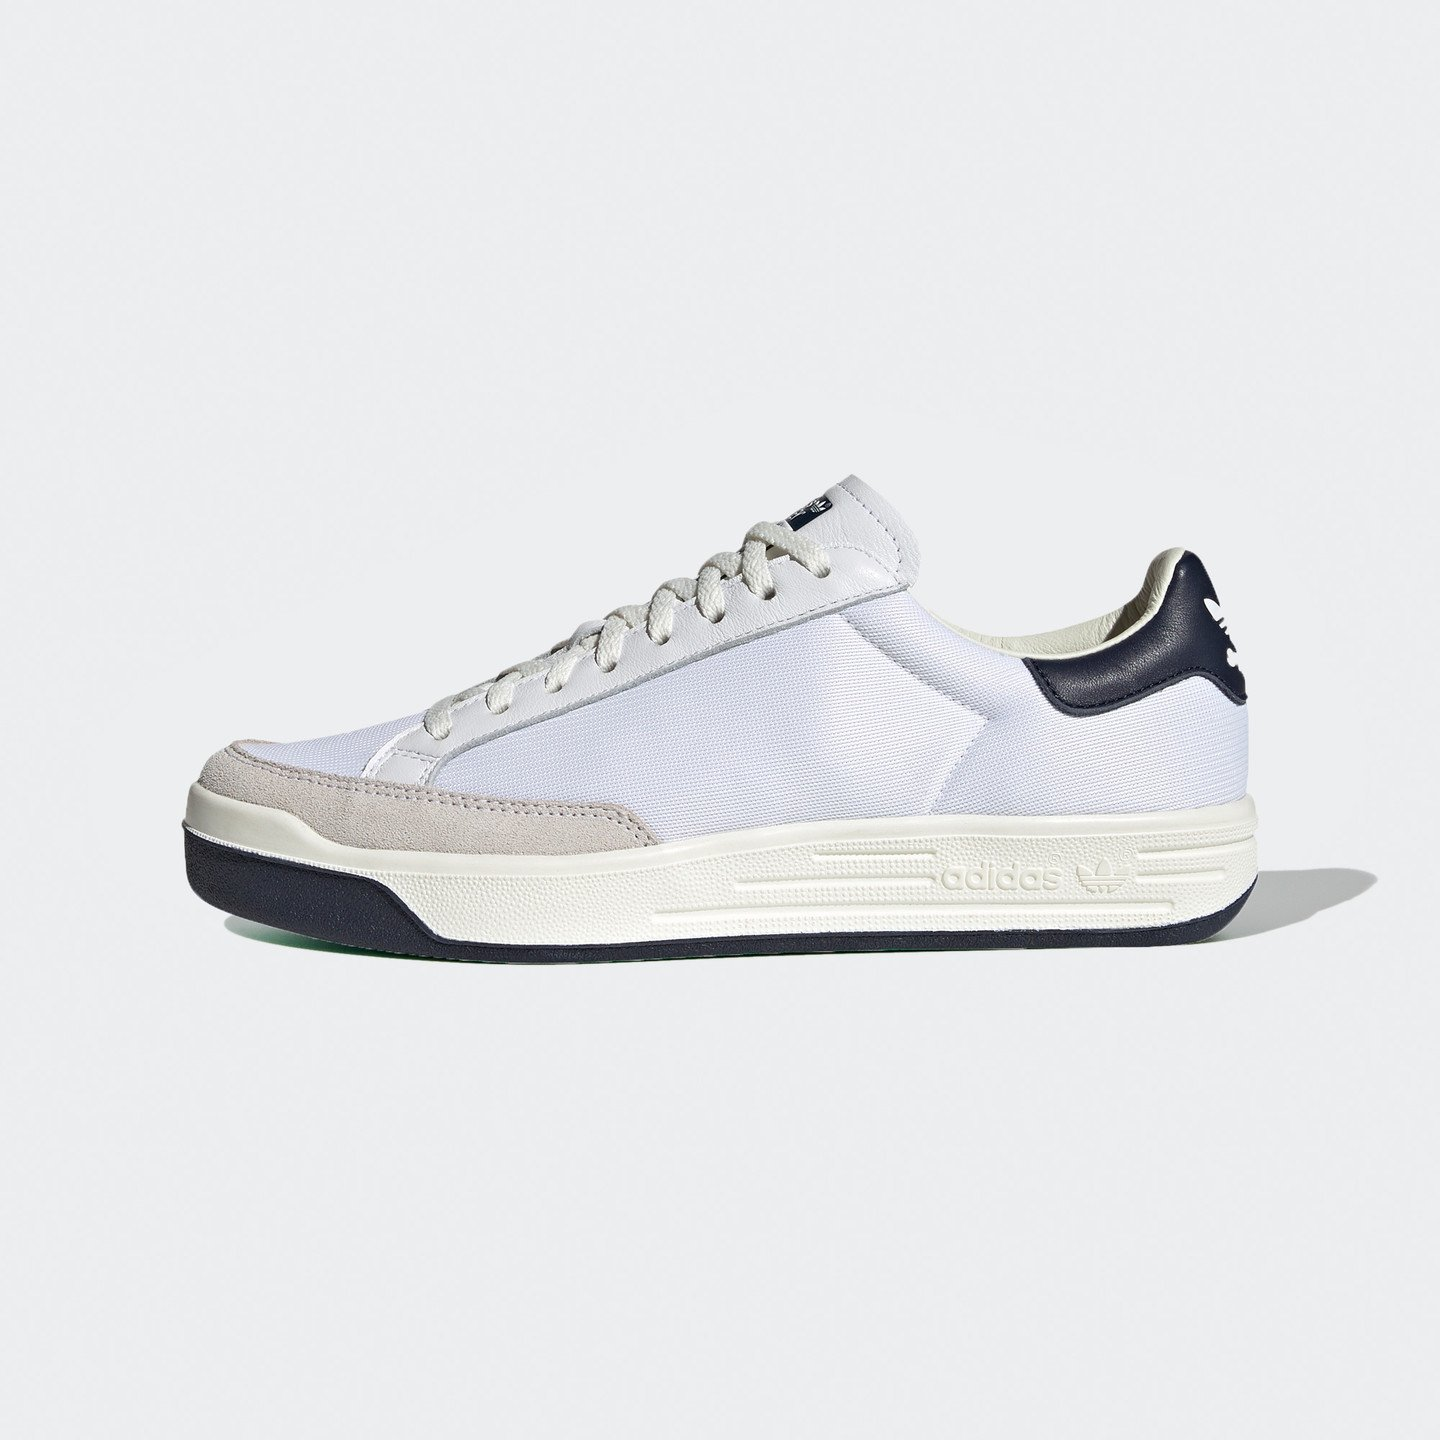 Adidas Rod Laver 'Rodney vs. Stanley' Cream White / Cloud White / Collegiate Navy / Green FY1791